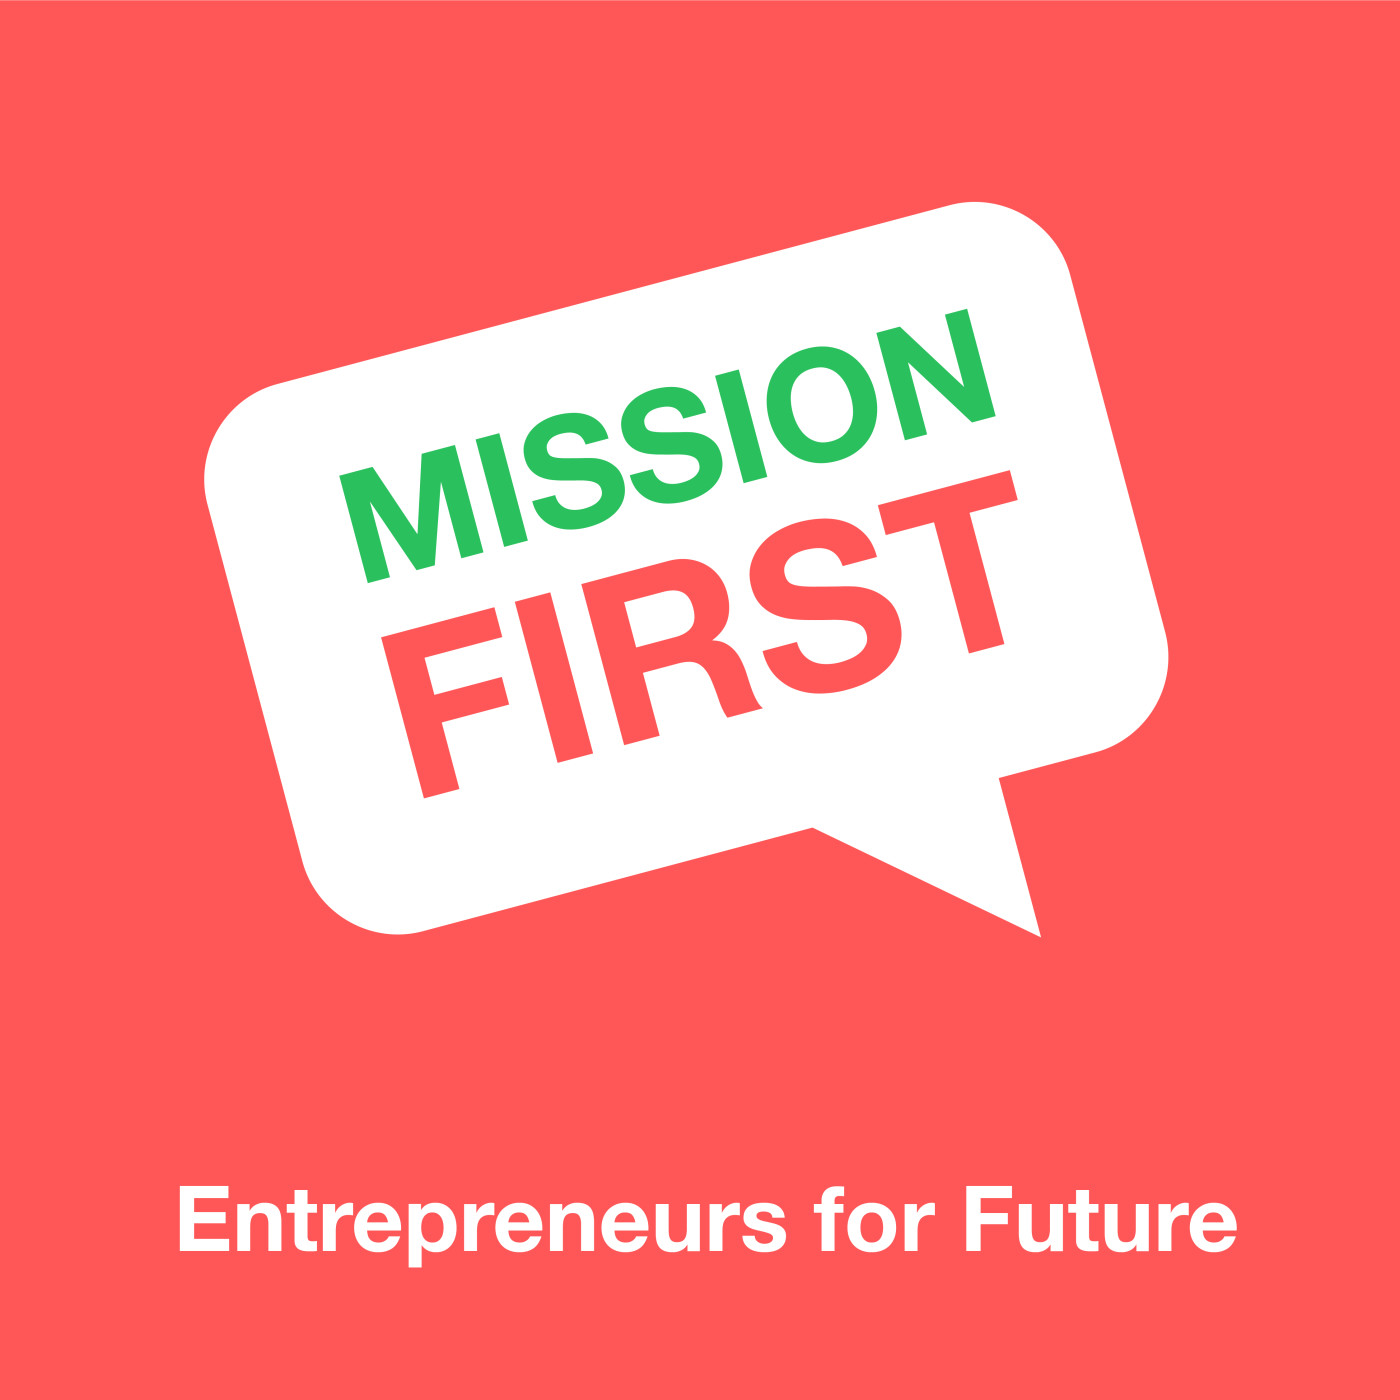 00. Mission First, Entrepreneurs for Future - Trailer